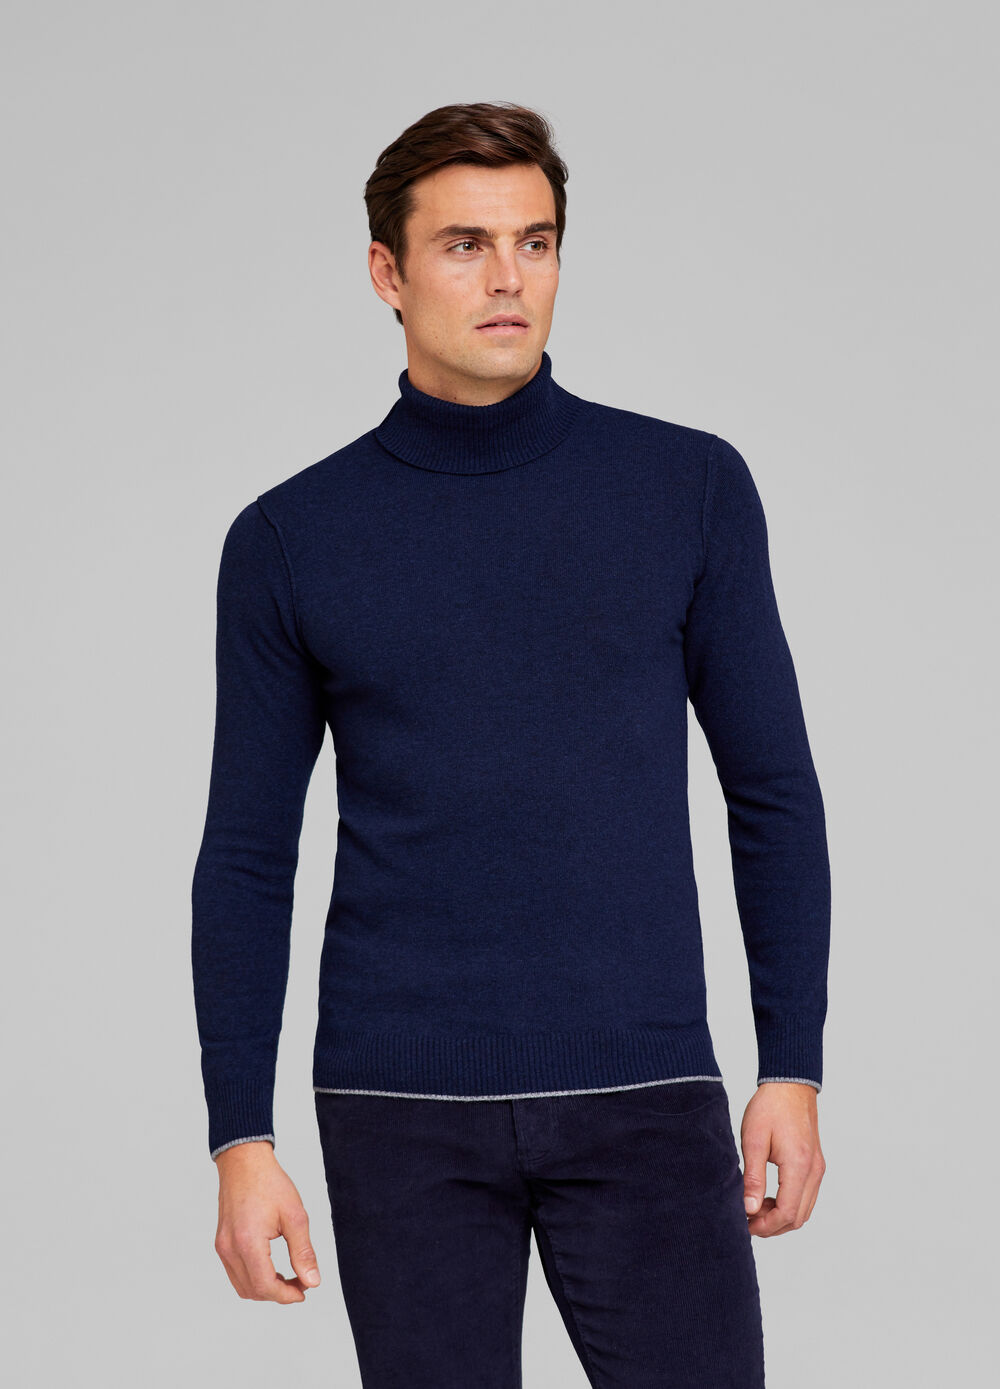 Tencel and wool blend pullover with high neck